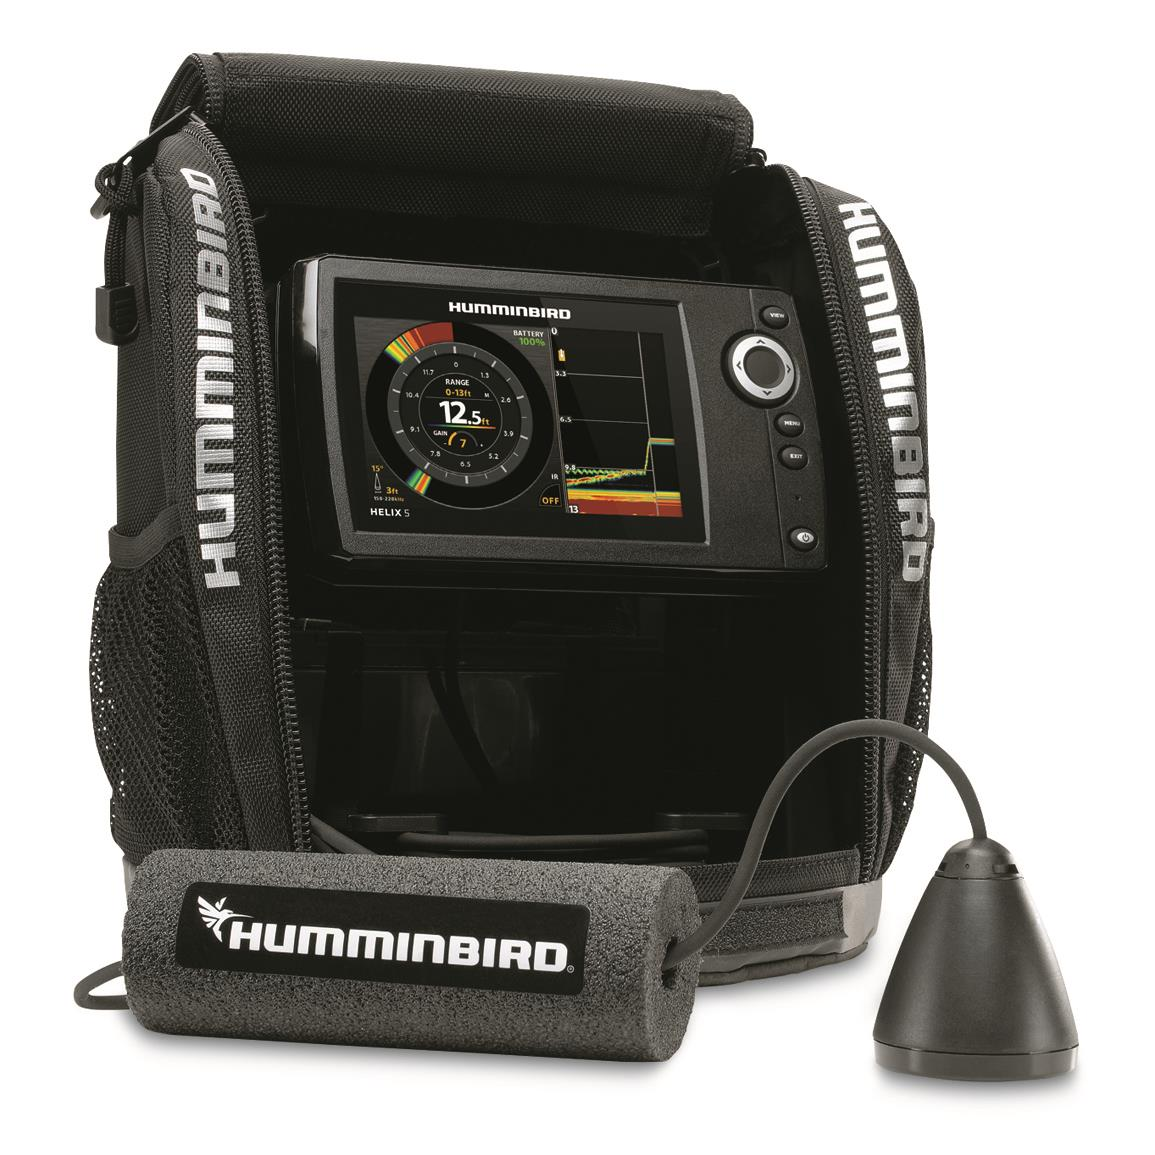 Humminbird Ice Helix 5 CHIRP G2 Fish Finder